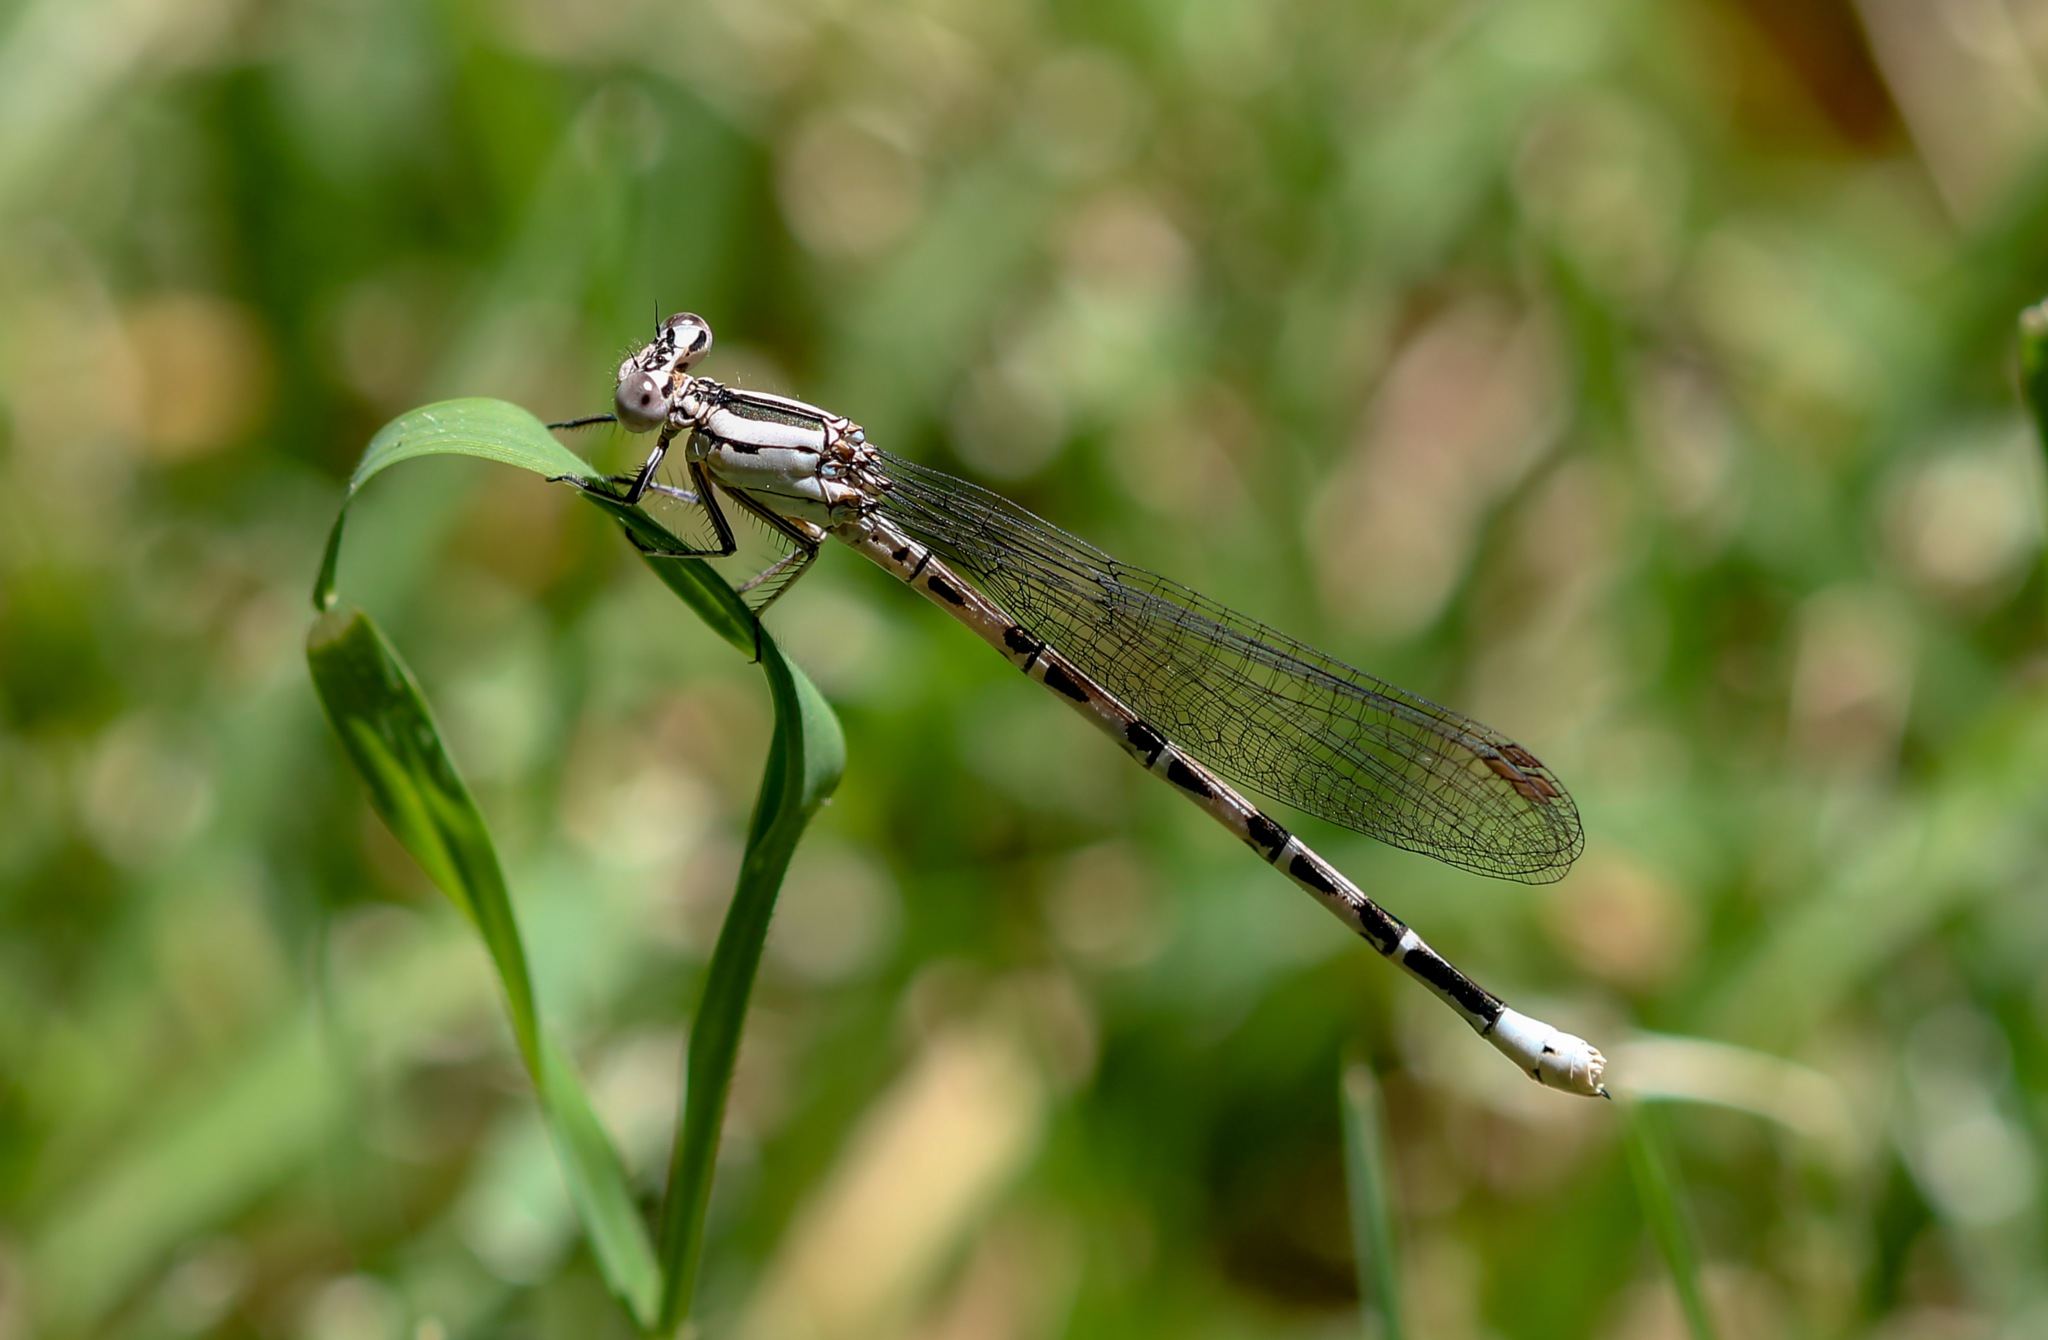 dragonfly by Toby Oggenfuss